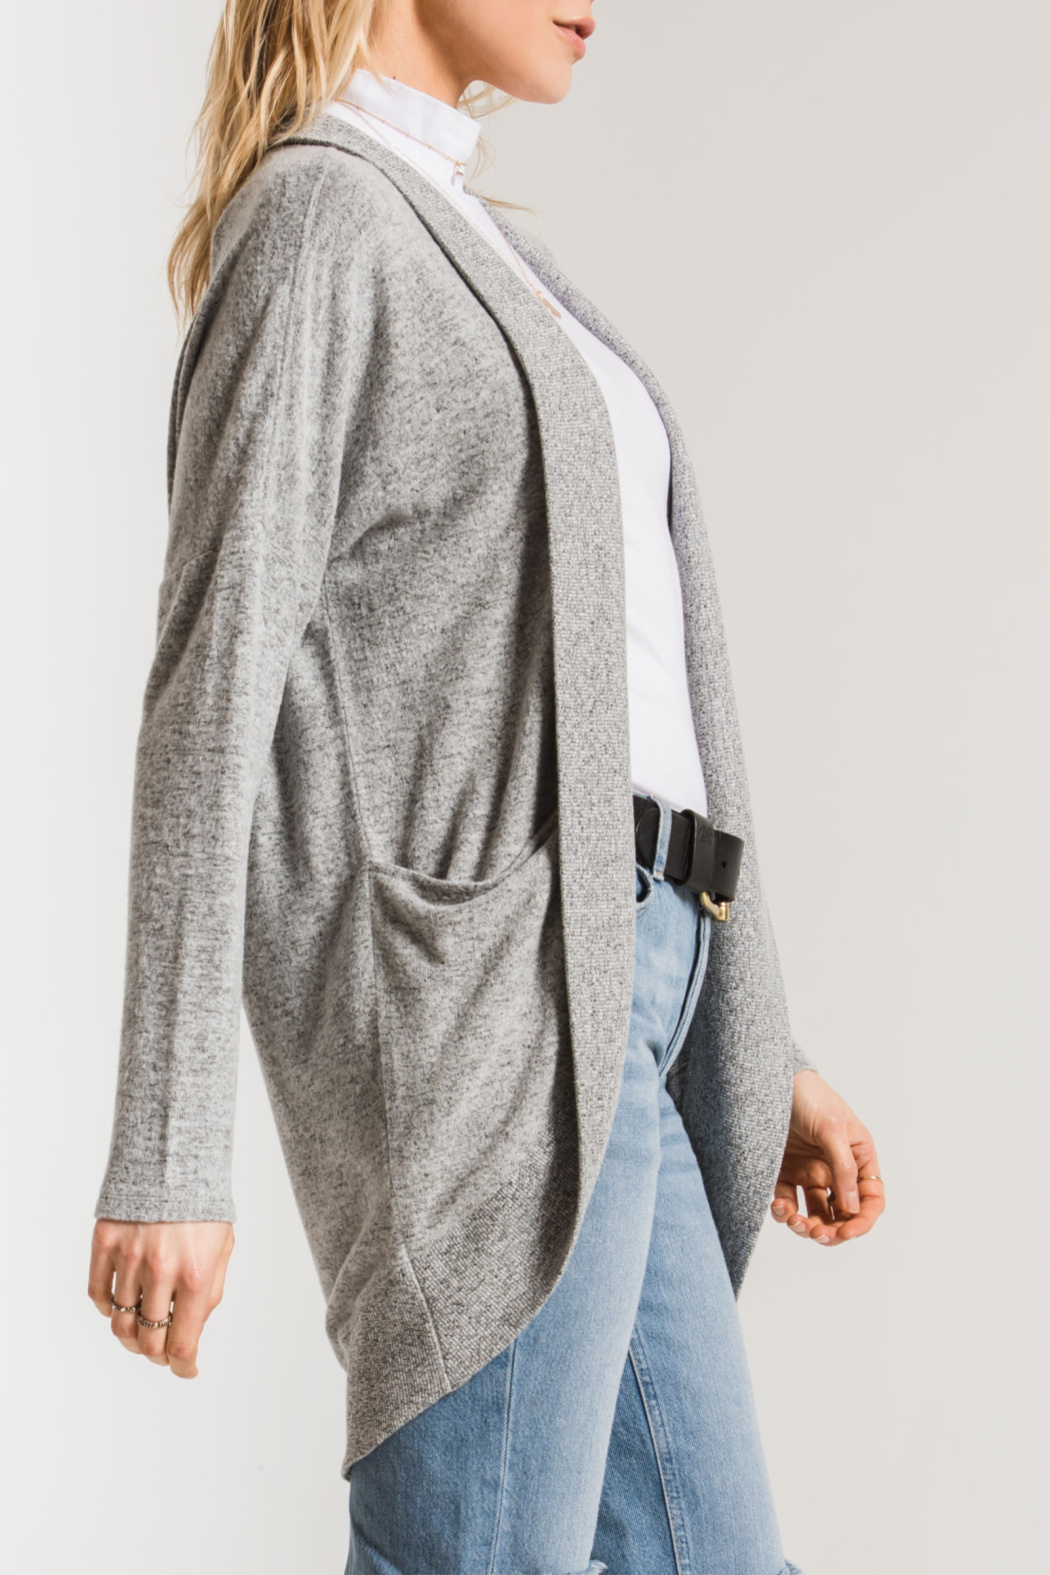 z supply Marled Knit Cocoon Sweater - Front Full Image